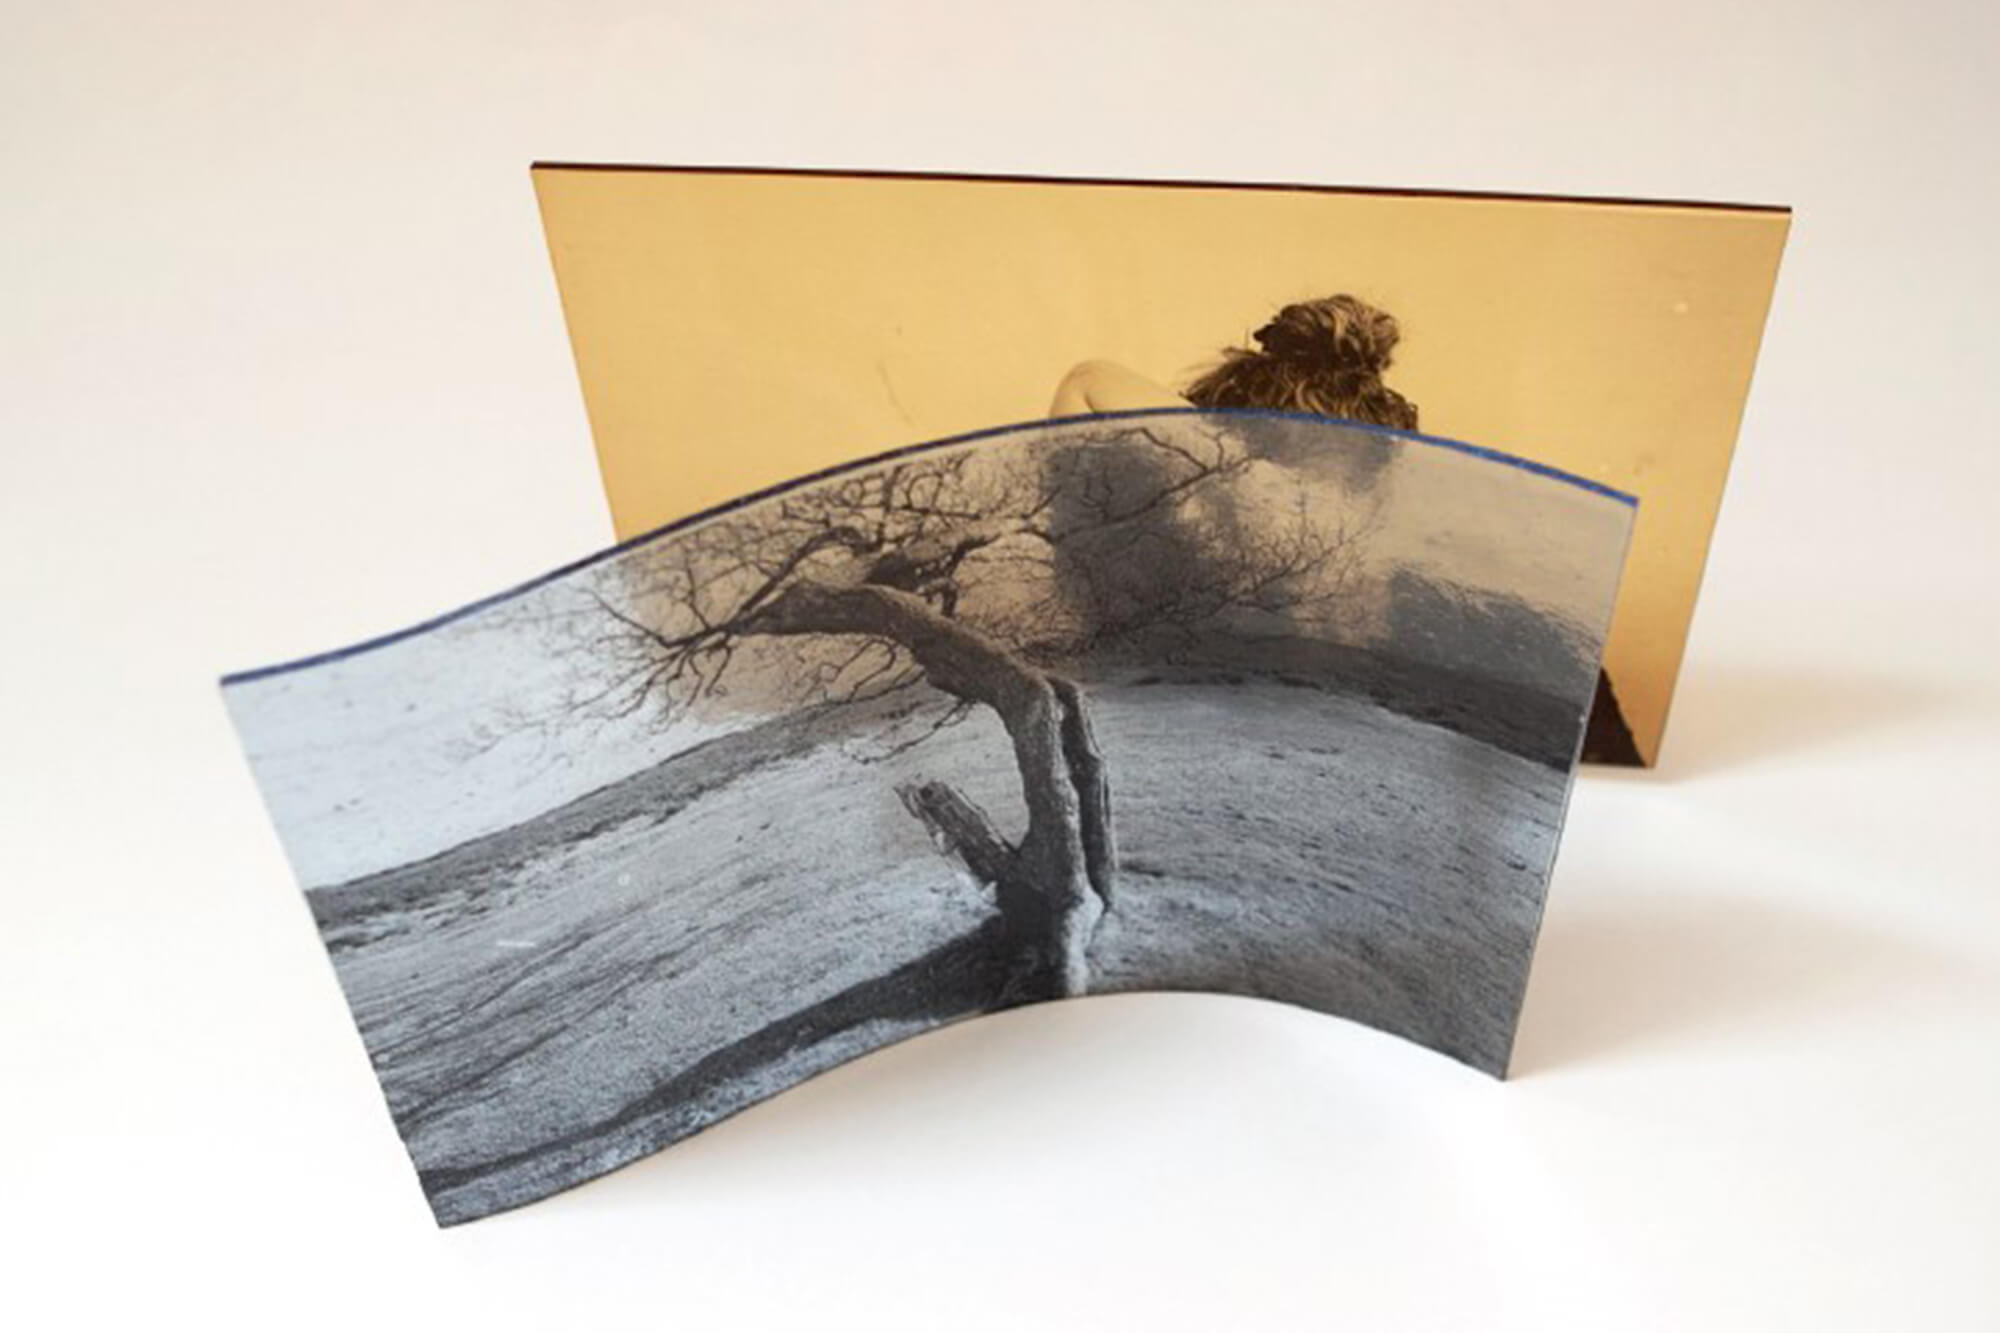 A negative photo of a tree in a field on curved glass stands in front of a sepia image of a woman leaning forward